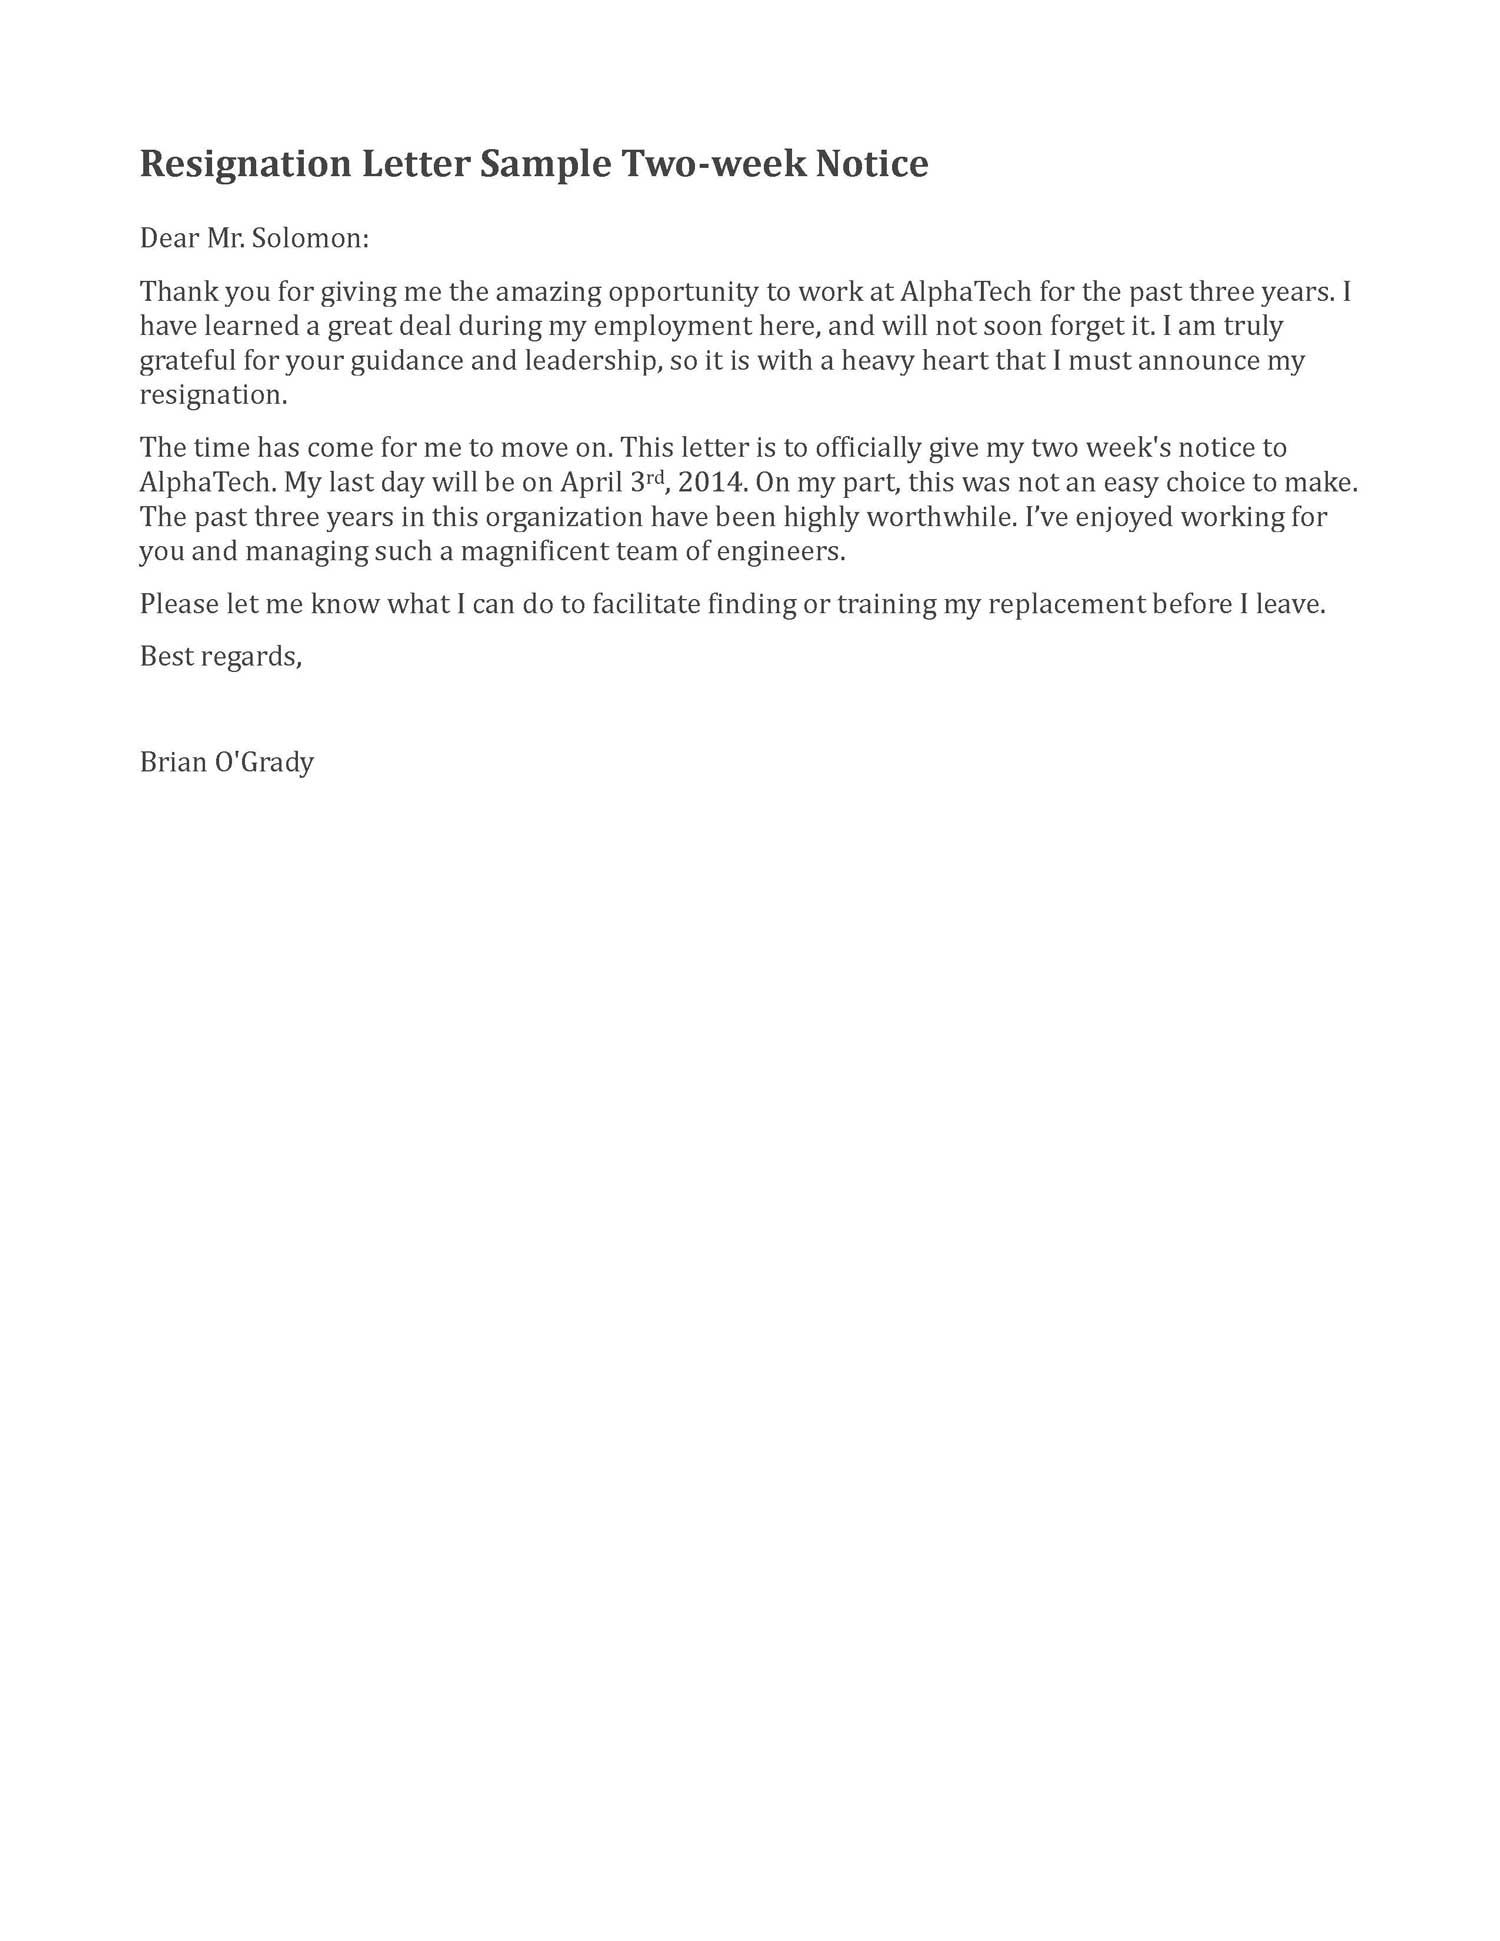 Short Resignation Letter Template - Resignation Letter Sample 2 Weeks Notice Google Search